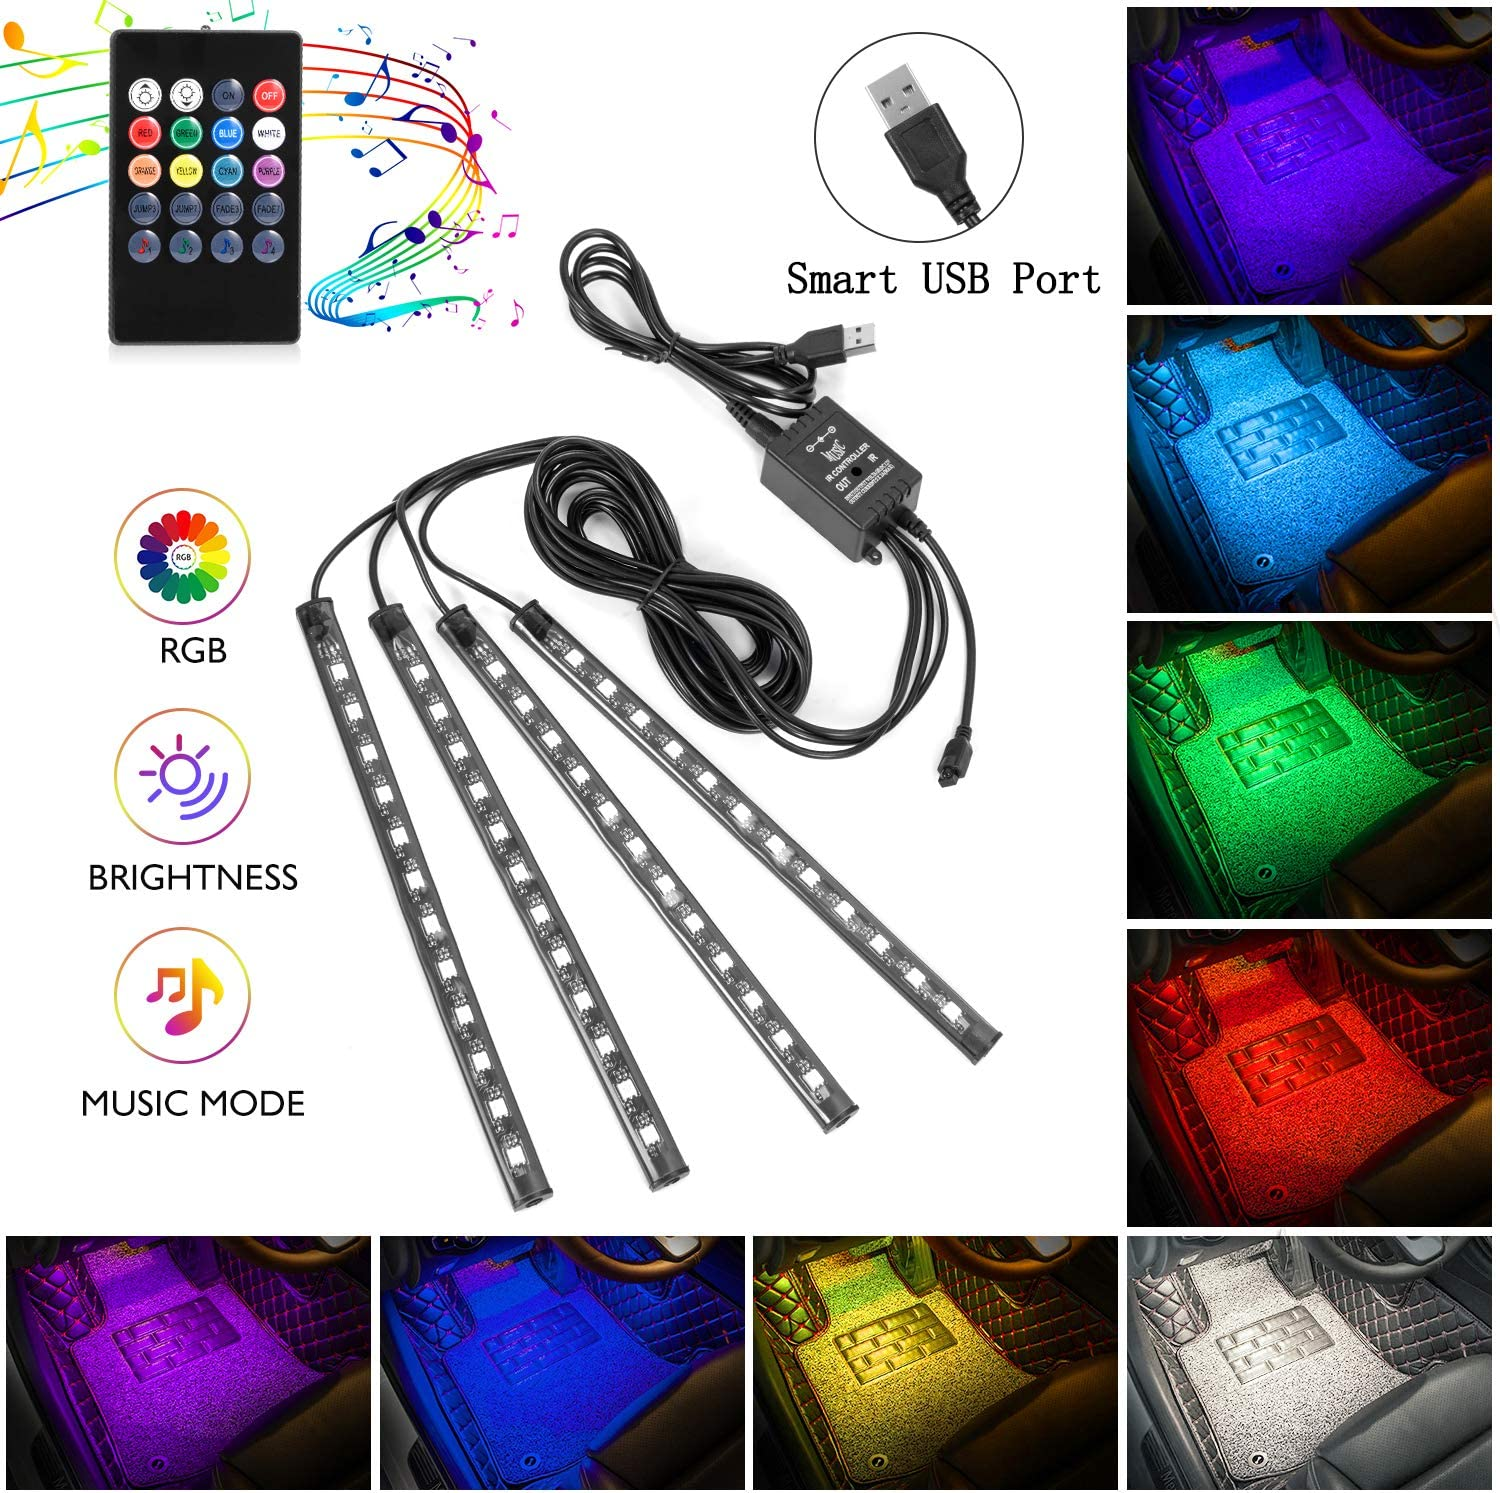 Interior Car Lights, 4pcs 48 USB Car LED Strip Lights, MultiColor Music LED Interior Light Under Dash Lighting Kit with Sound Active Function and Wireless Remote Controller, DC 5V